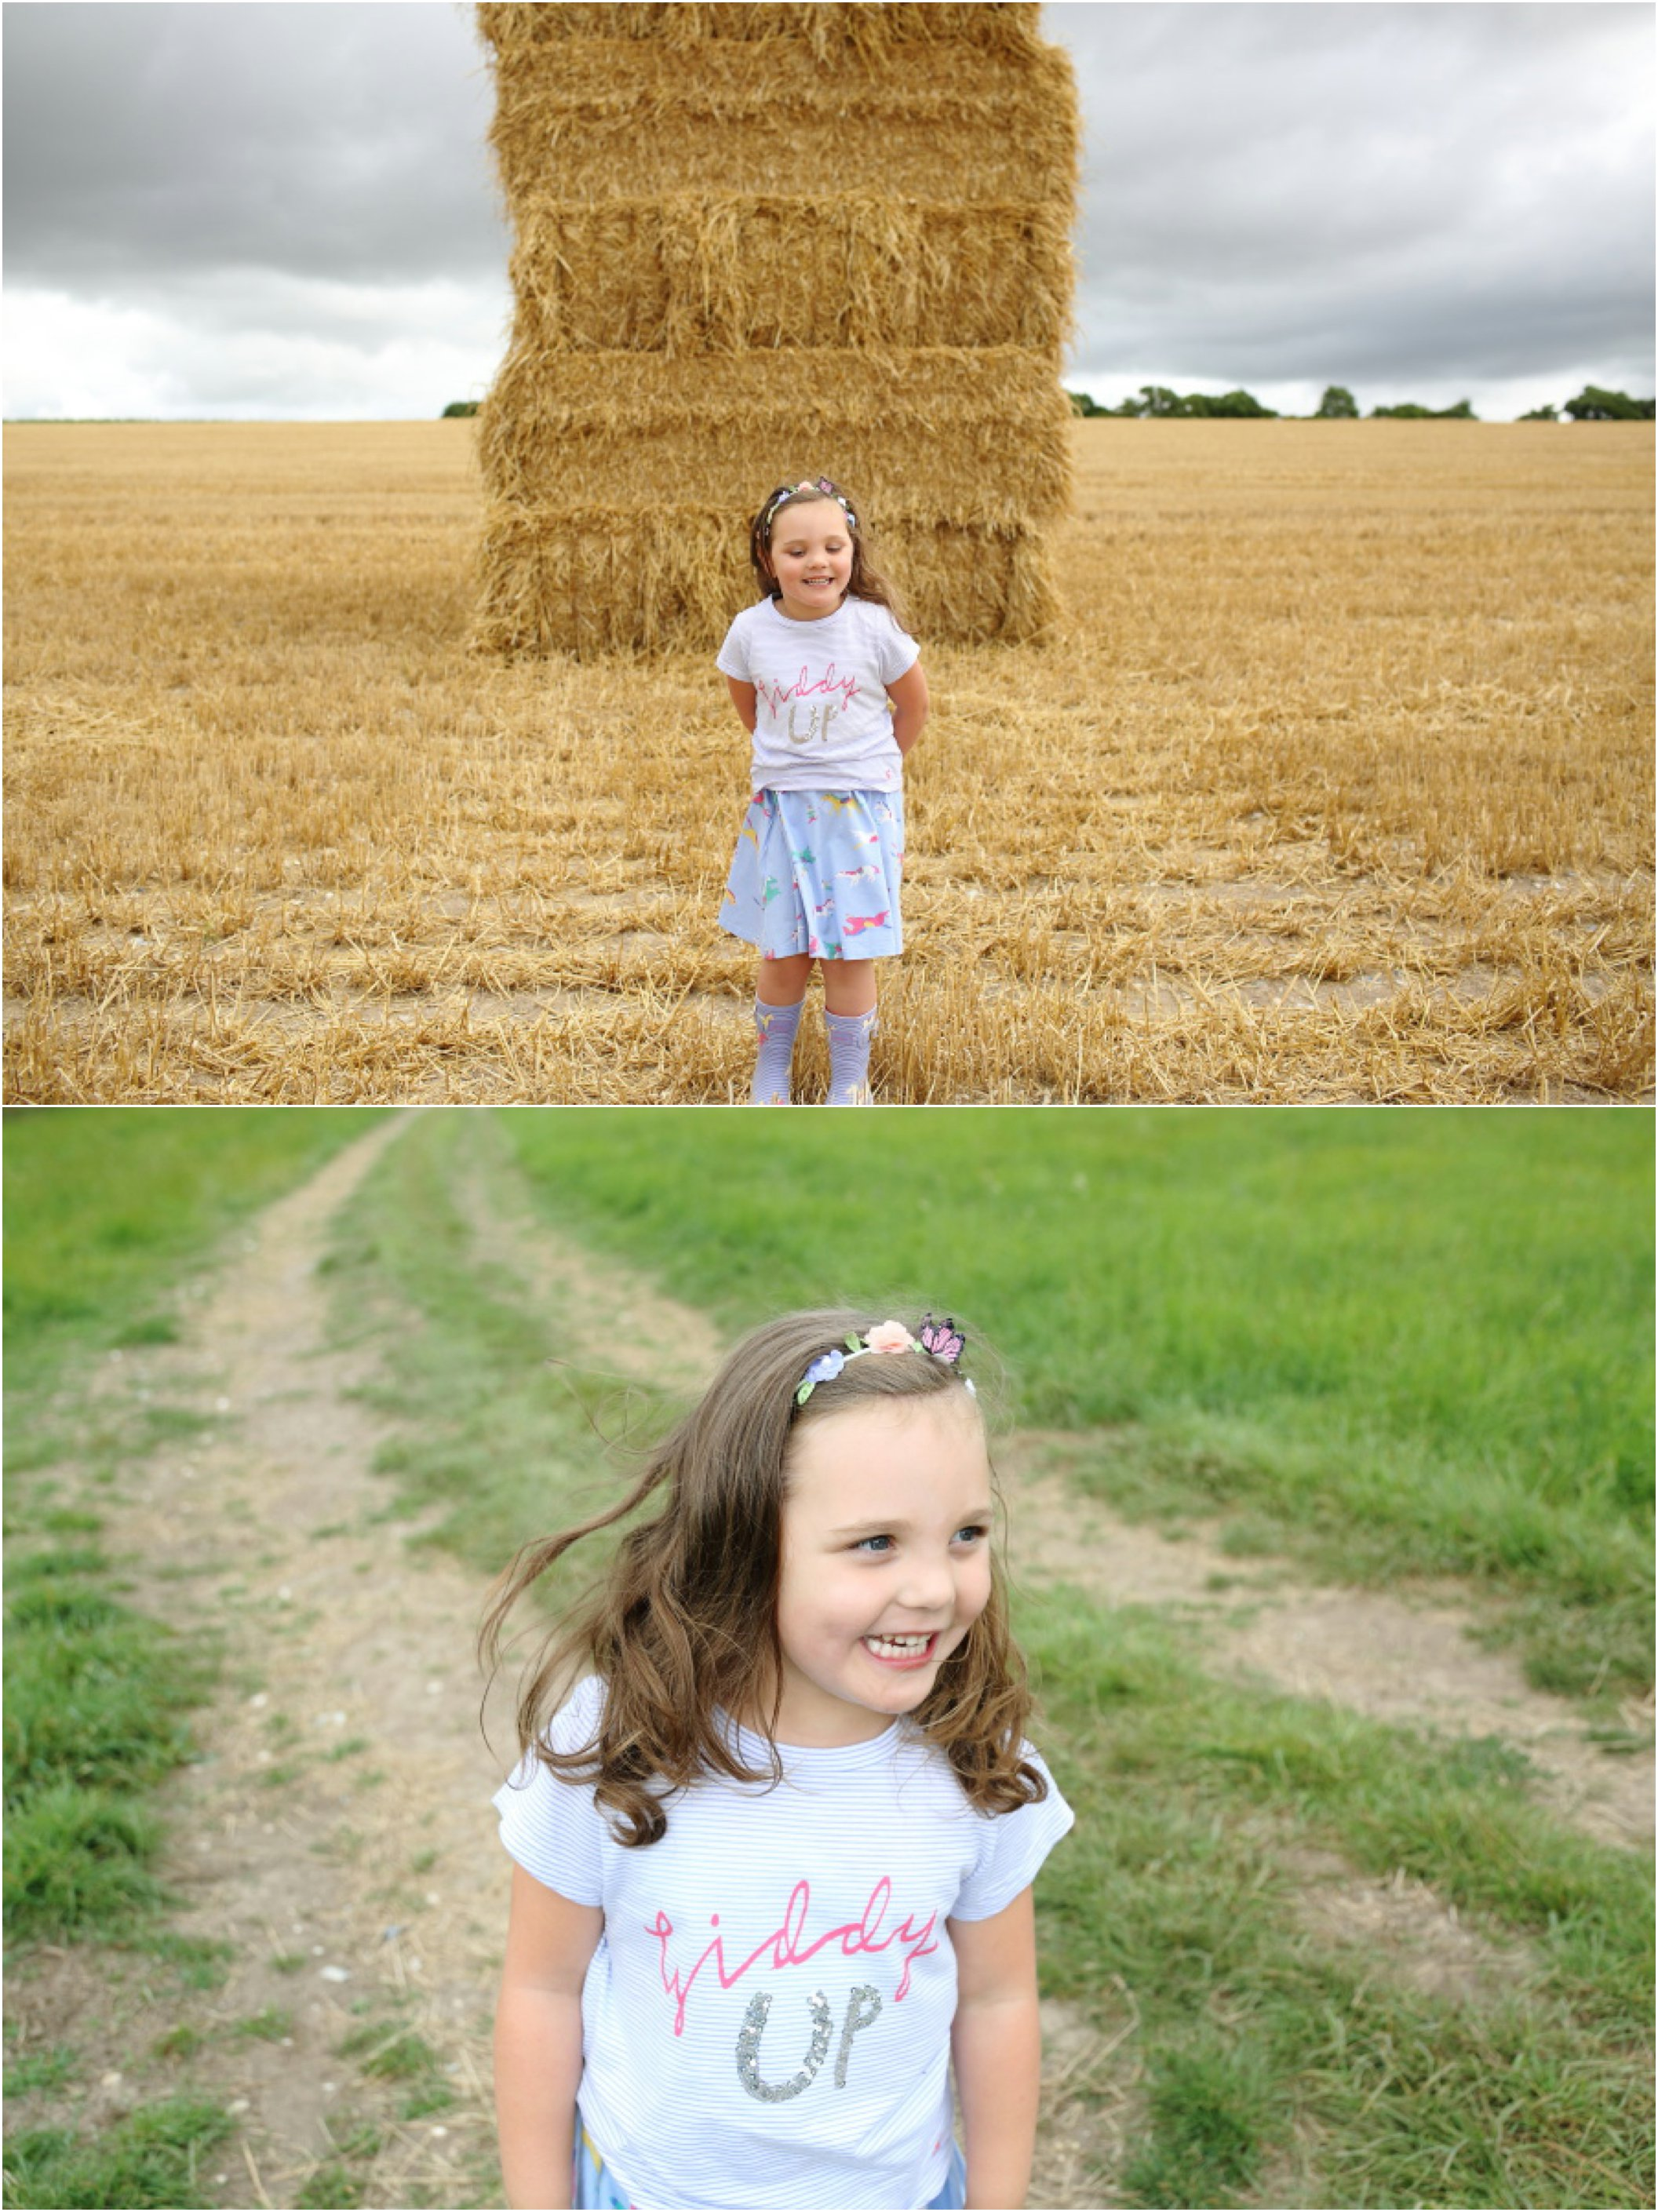 childrens portriat photography on the farm in Cambridge, haystacks and fields